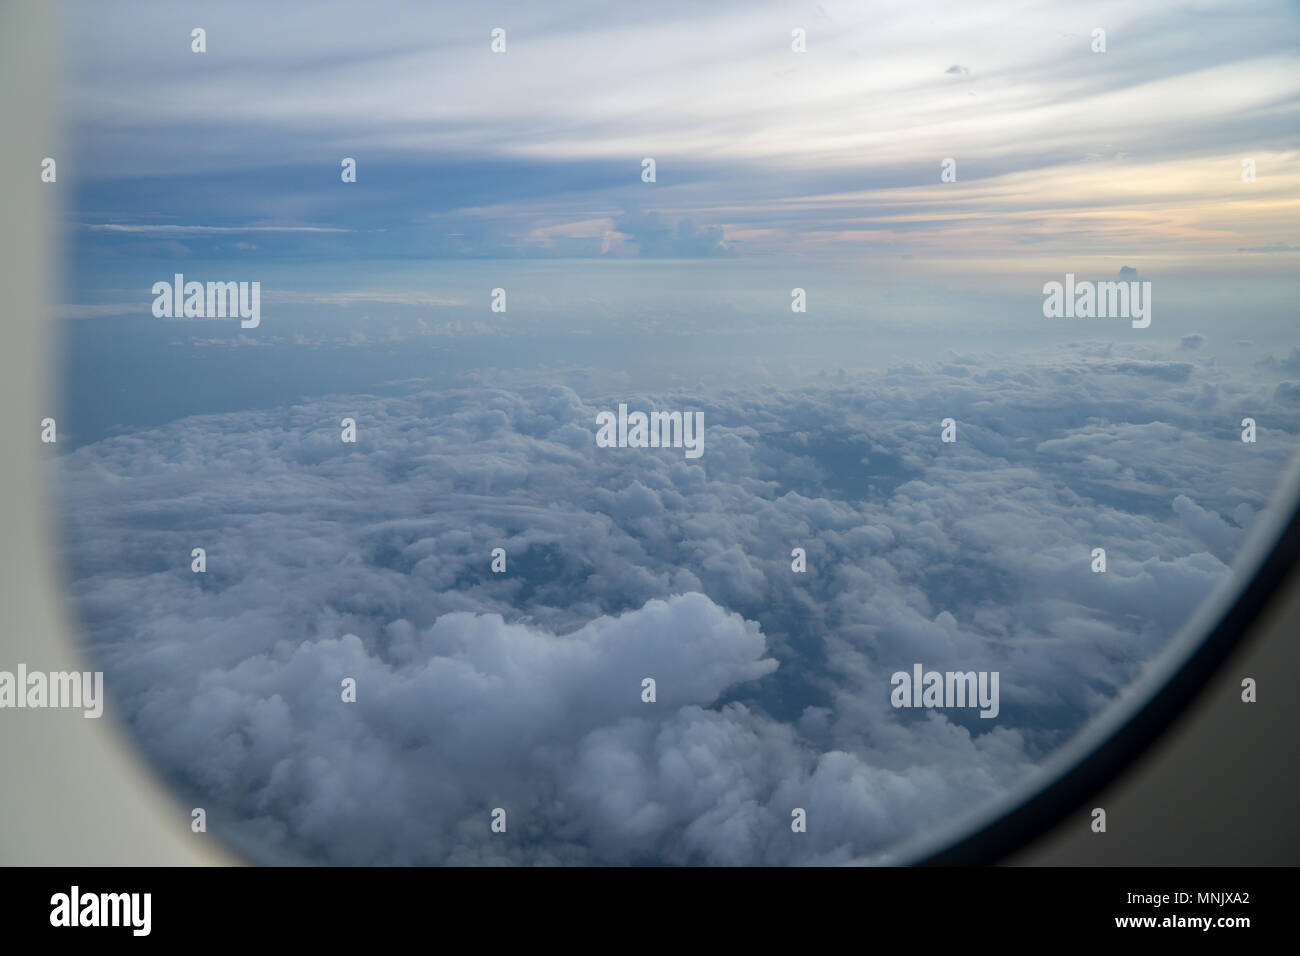 View out of airplane window with clouds at sunset. Stock Photo